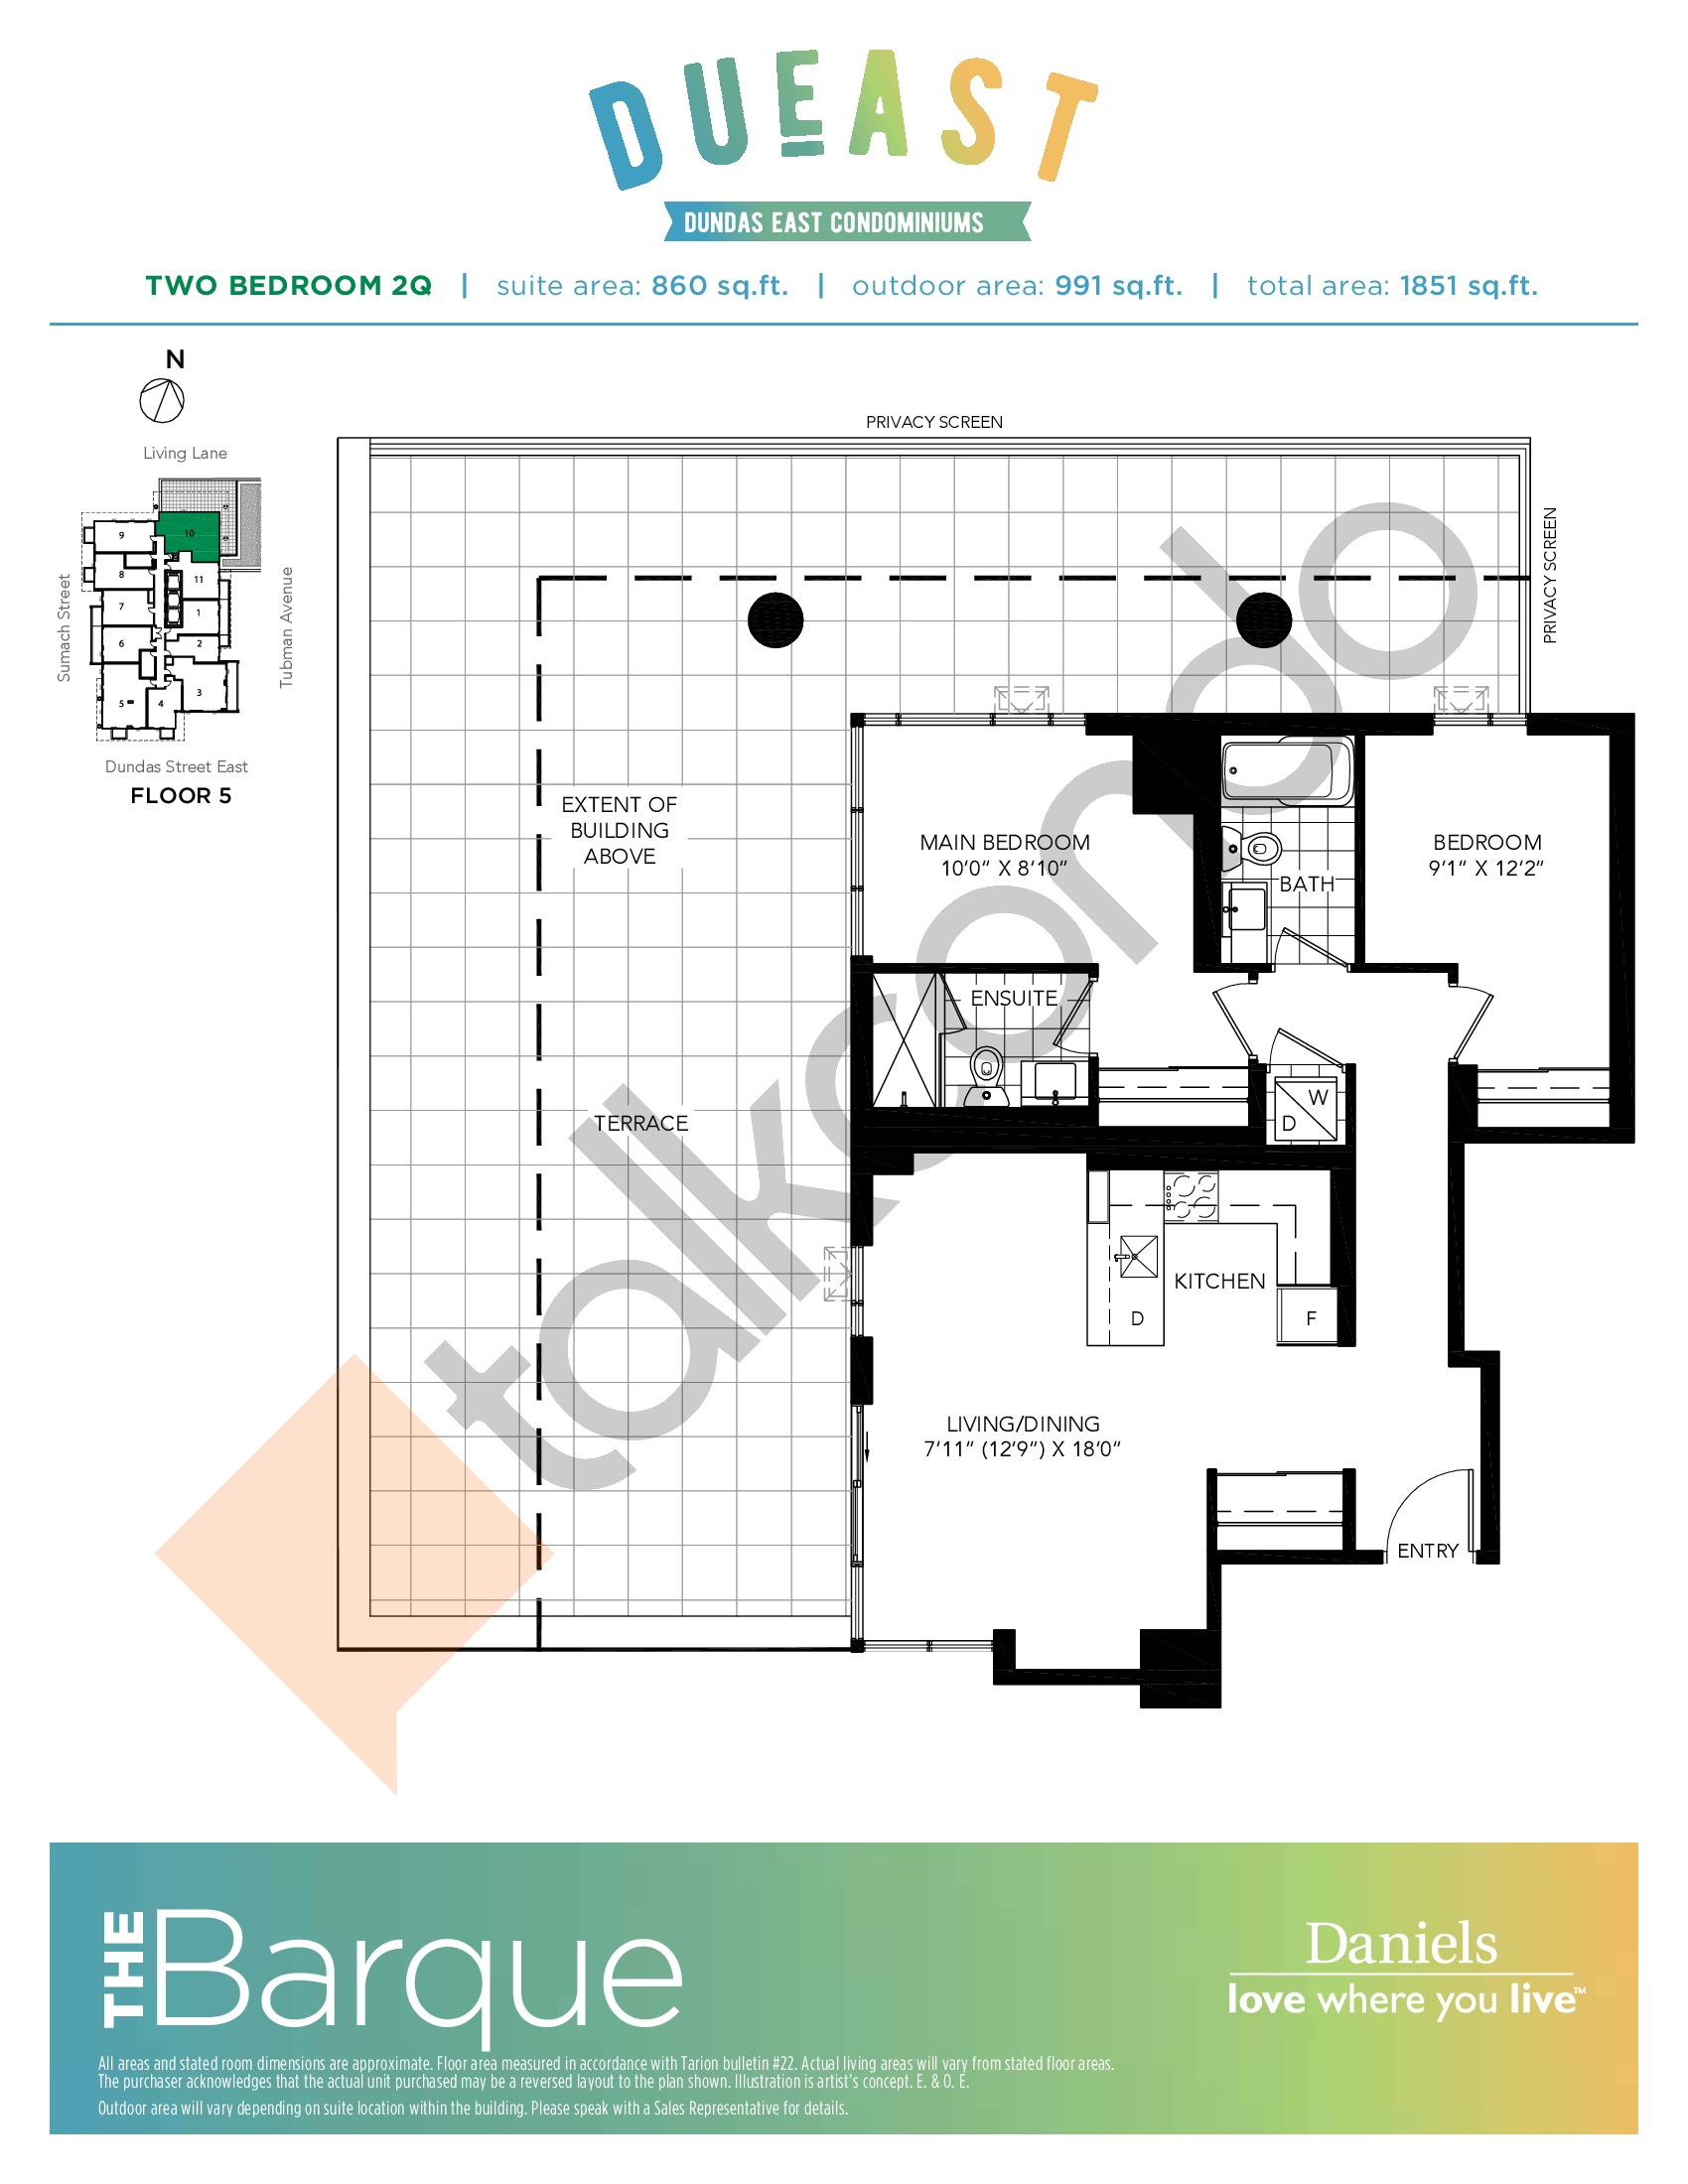 The Barque (2Q) Floor Plan at DuEast Condos - 860 sq.ft